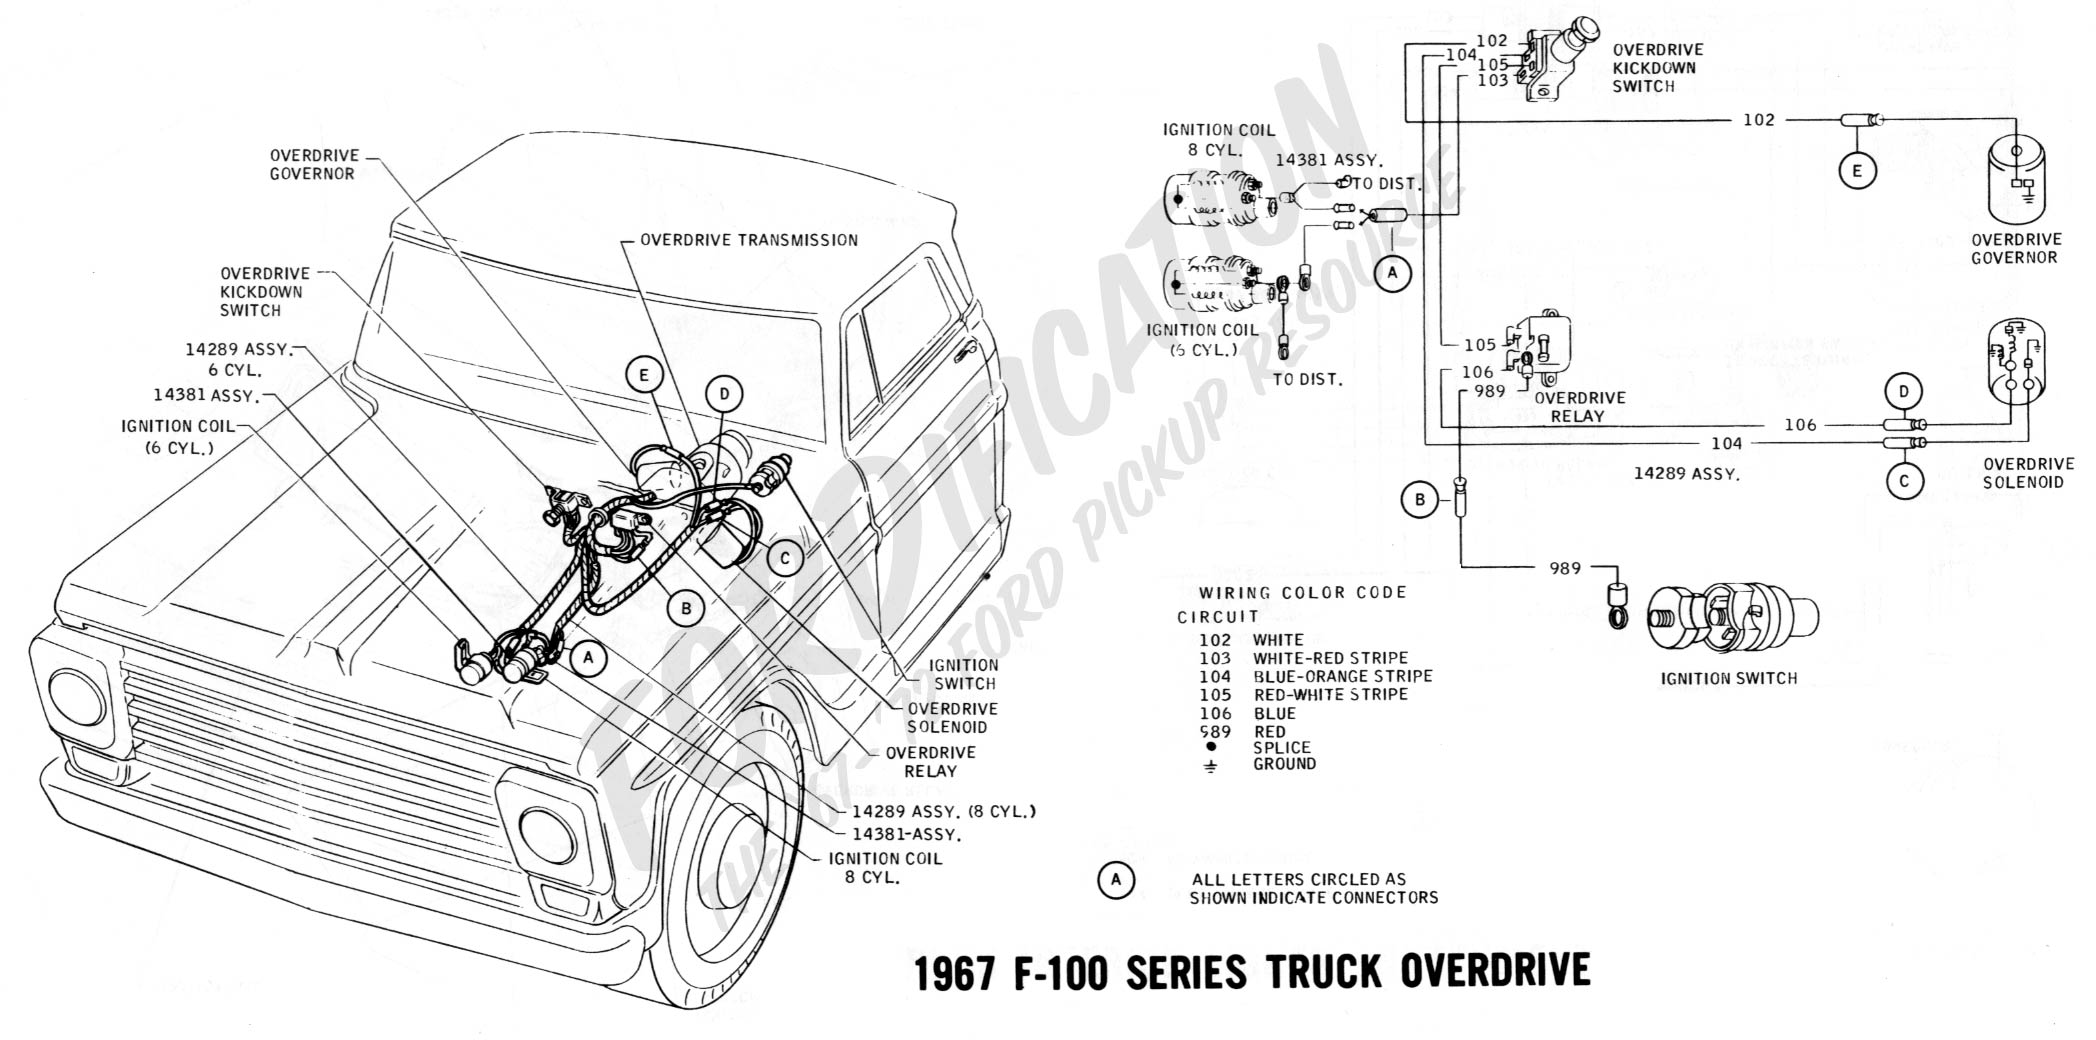 Ford Truck Technical Drawings And Schematics Section H Wiring 1966 Mustang Wiring  Diagram 1967 F250 Wiring Diagram